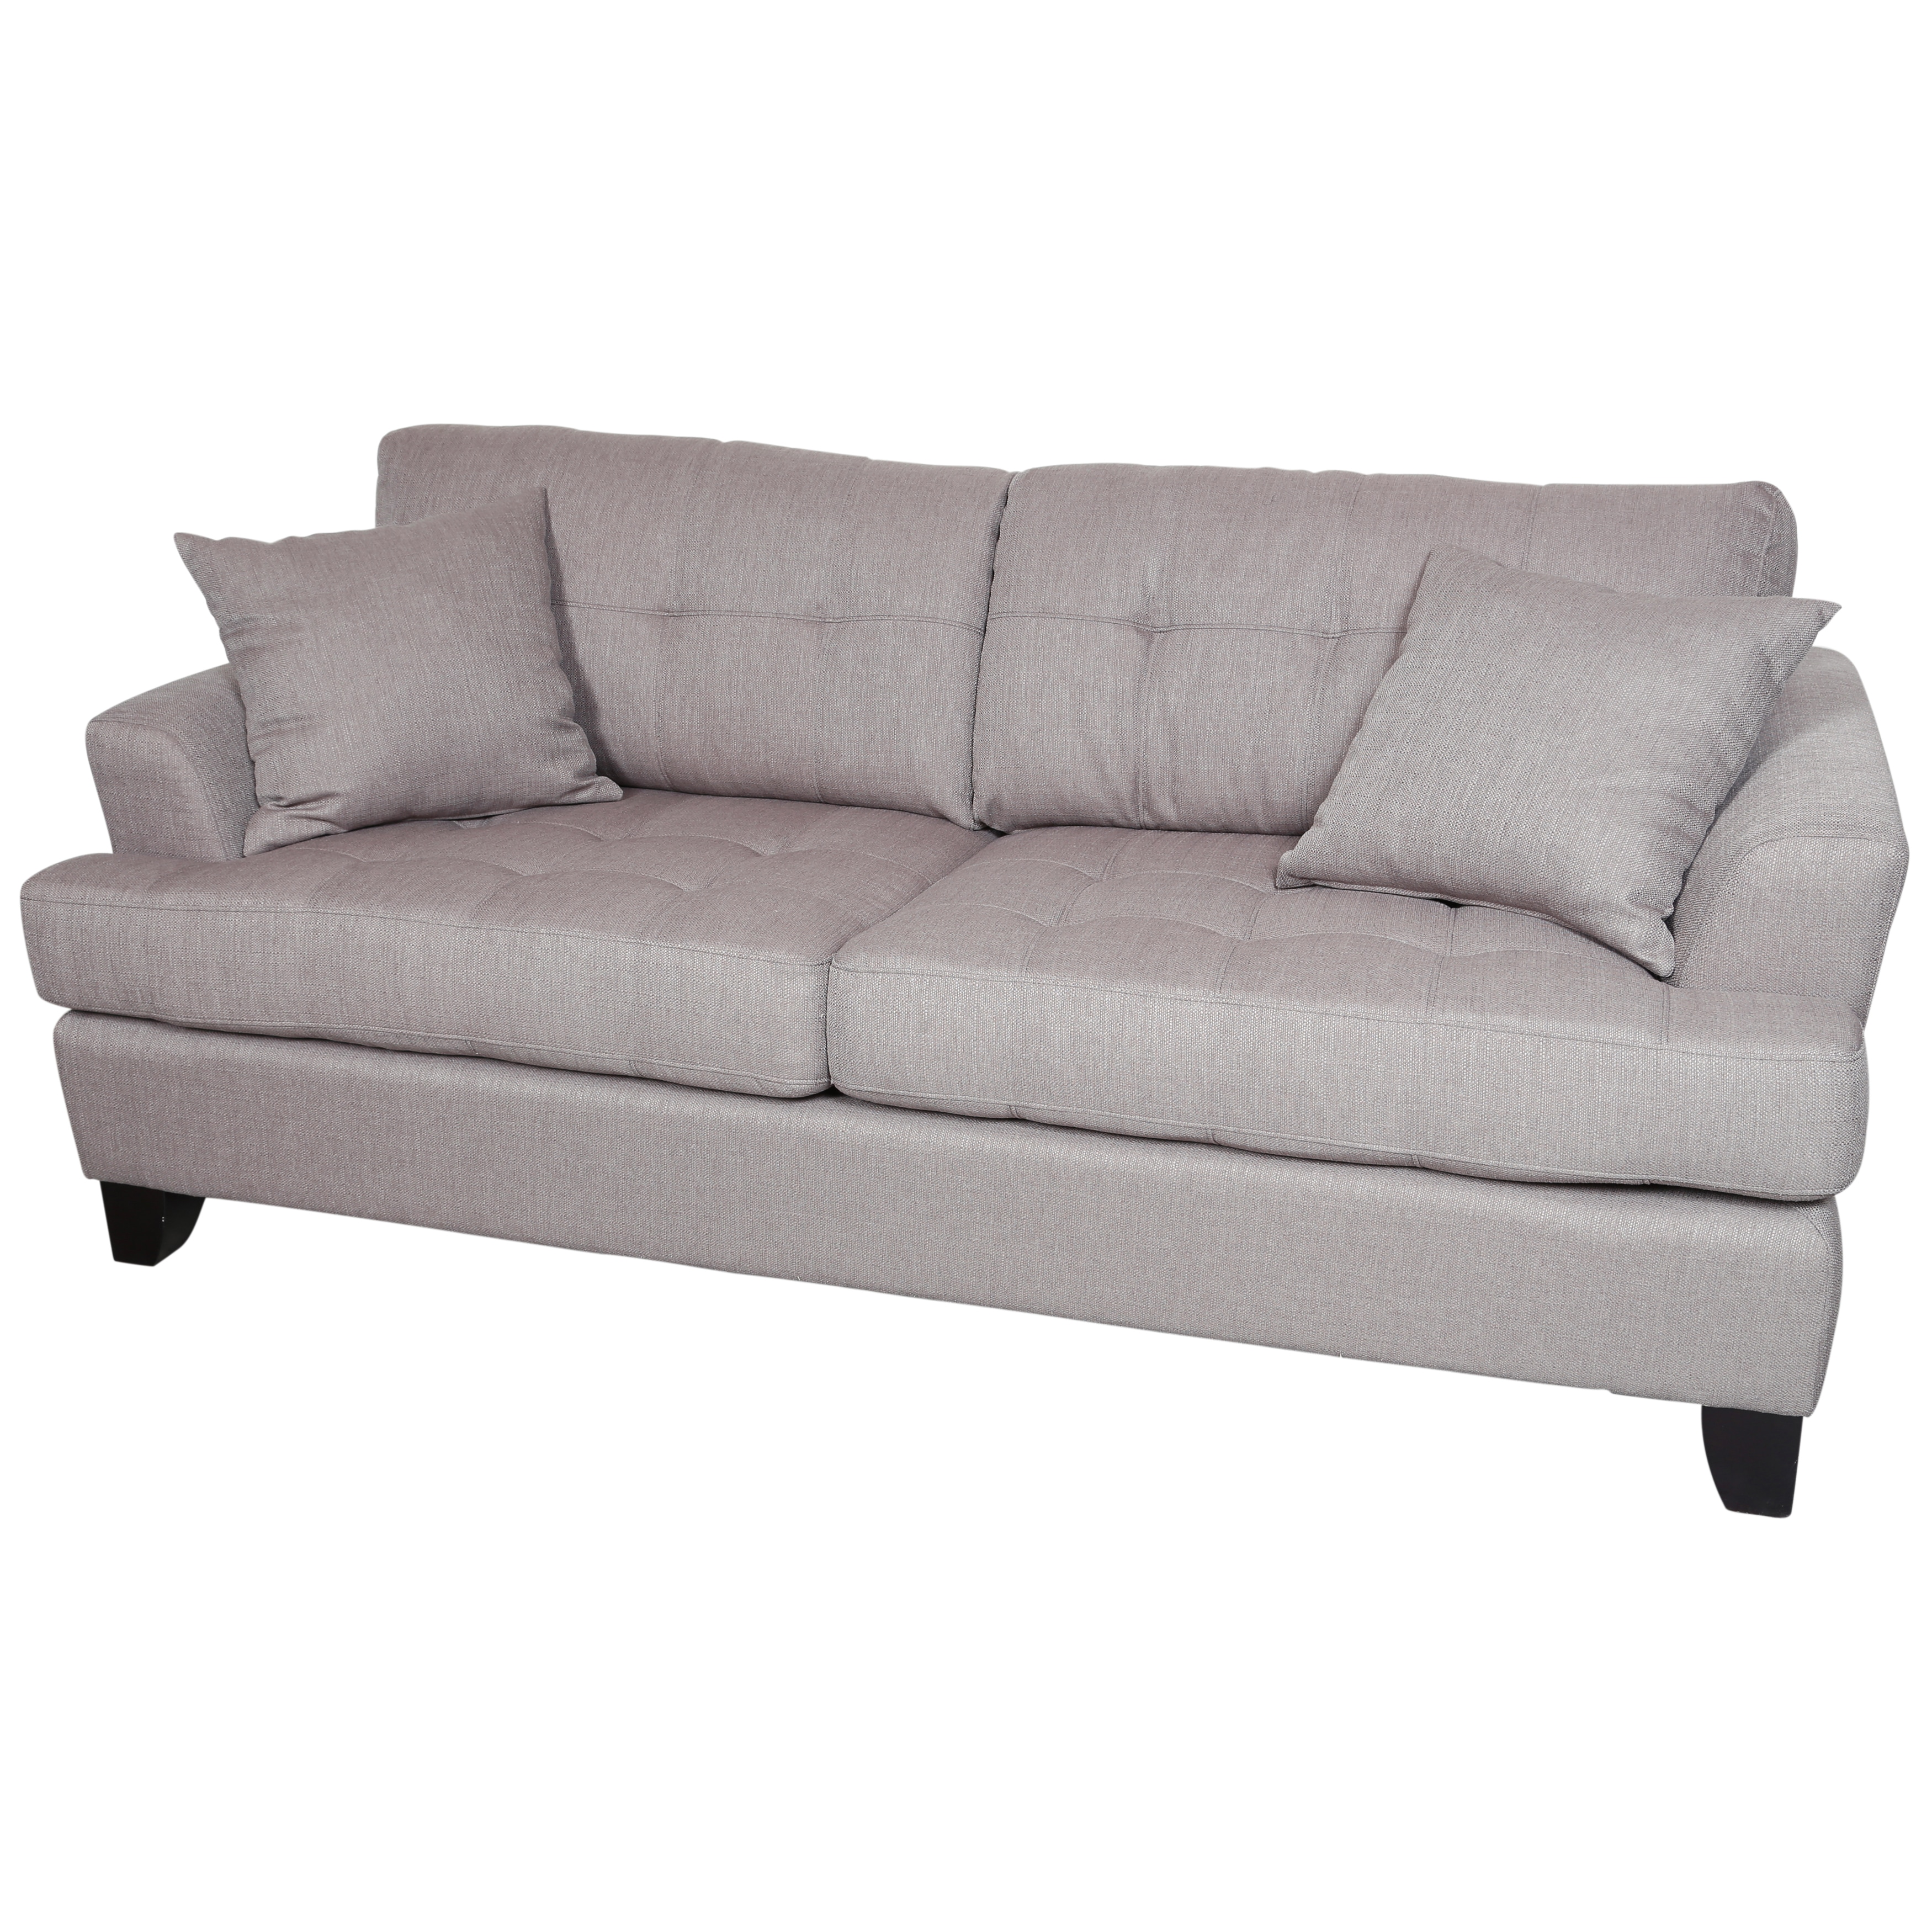 Porter Norwich Putty Taupe Modern Sofa